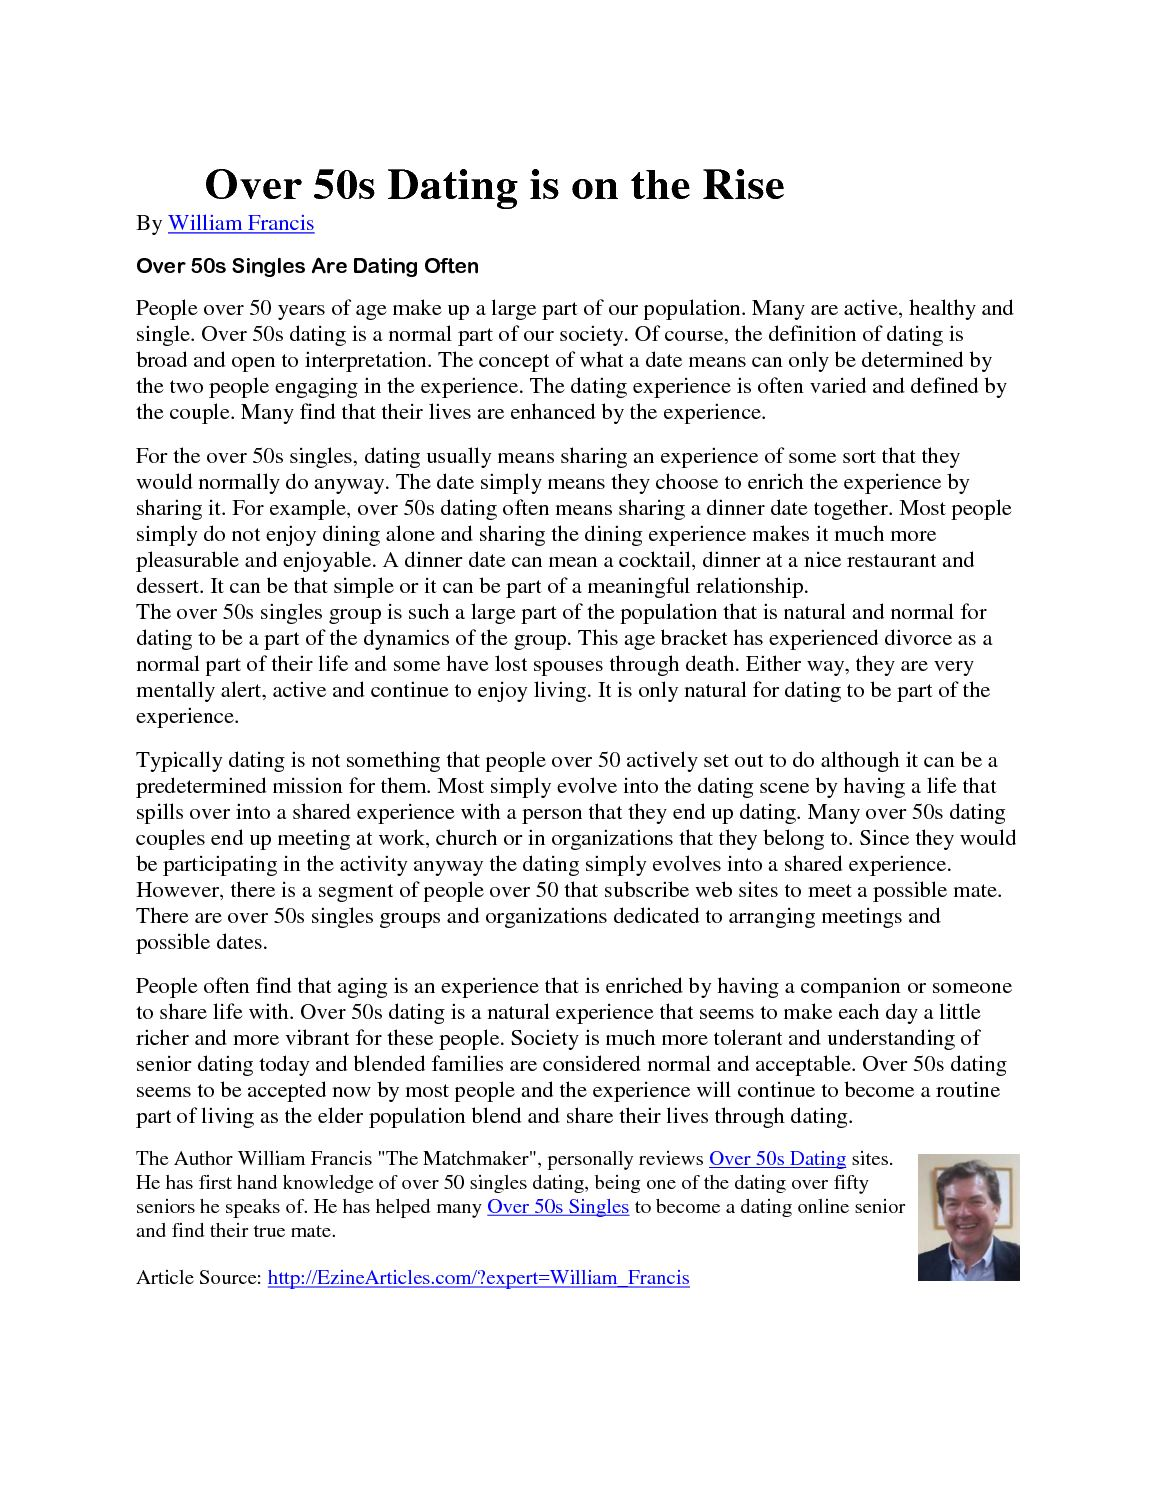 dating services for seniors reviews